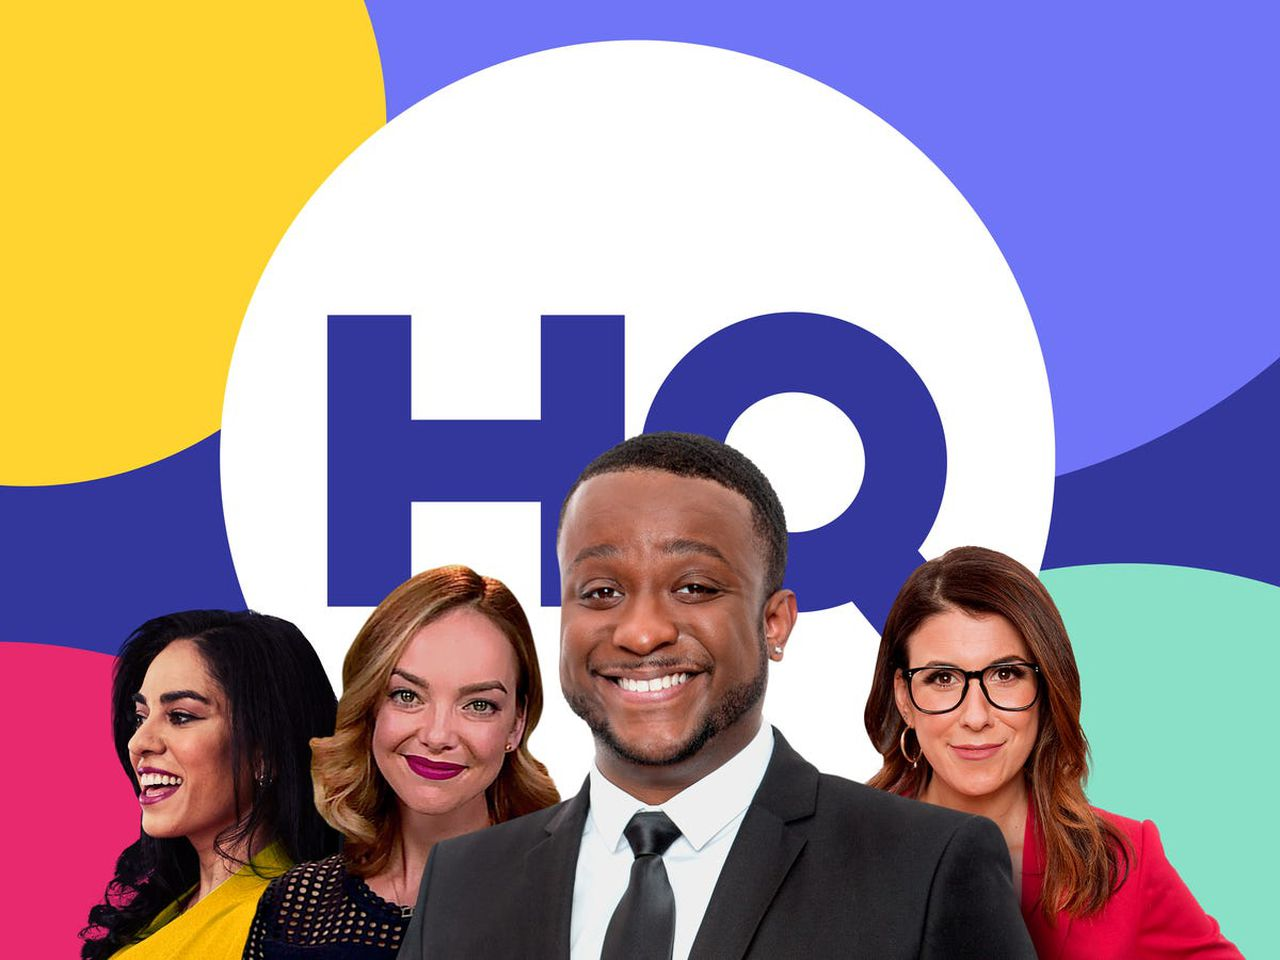 HQ Trivia shut down, all employees and contracts terminated. Image via Business Insider.